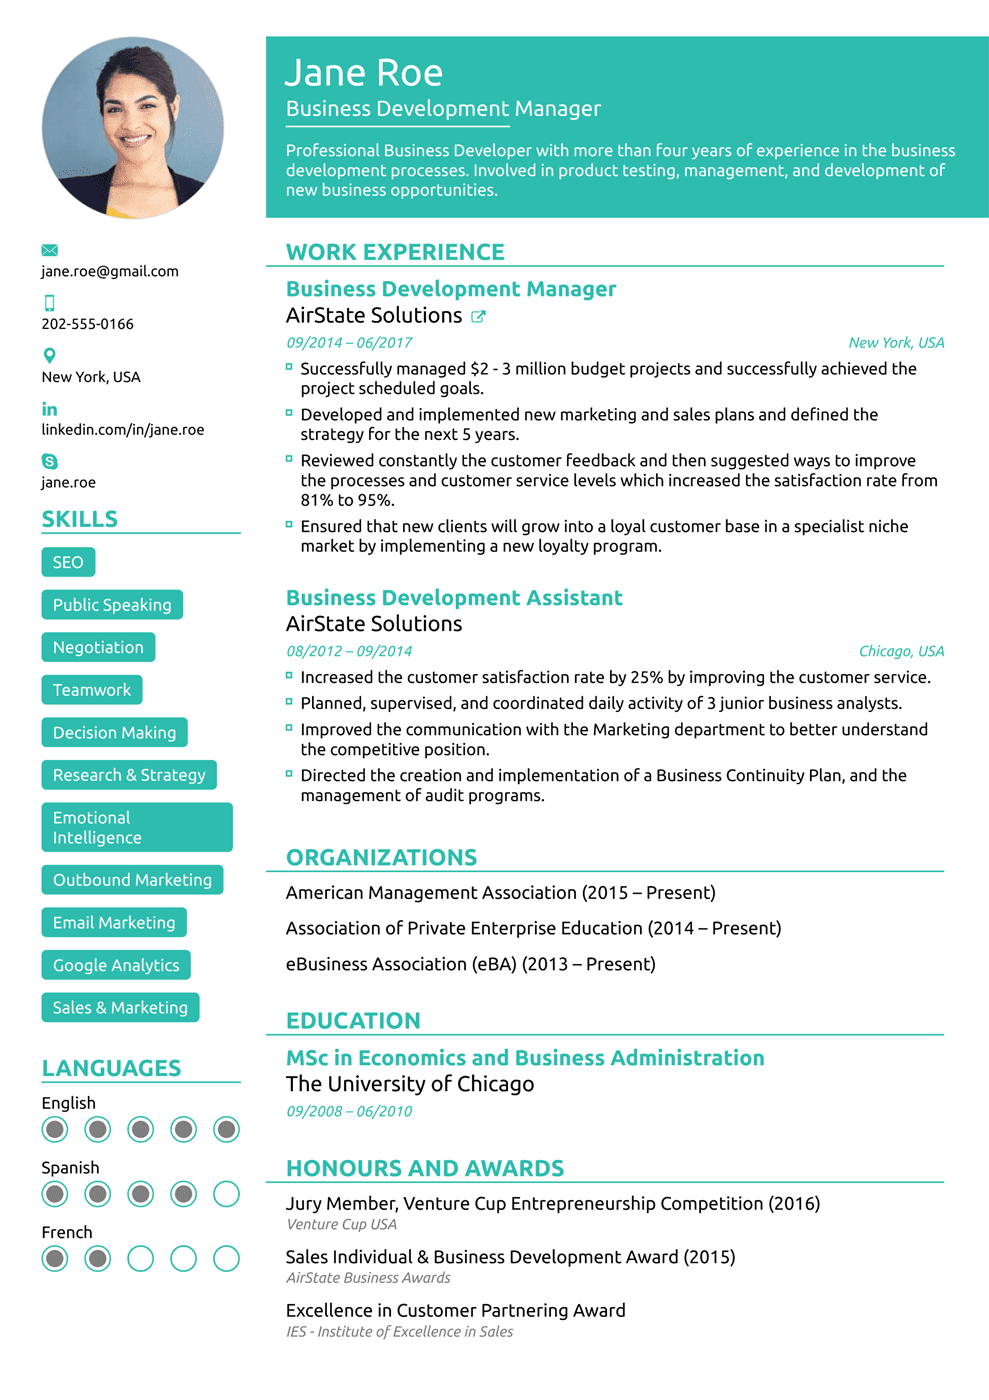 Templates For Resumes | 2018 Professional Resume Templates As They Should Be 8